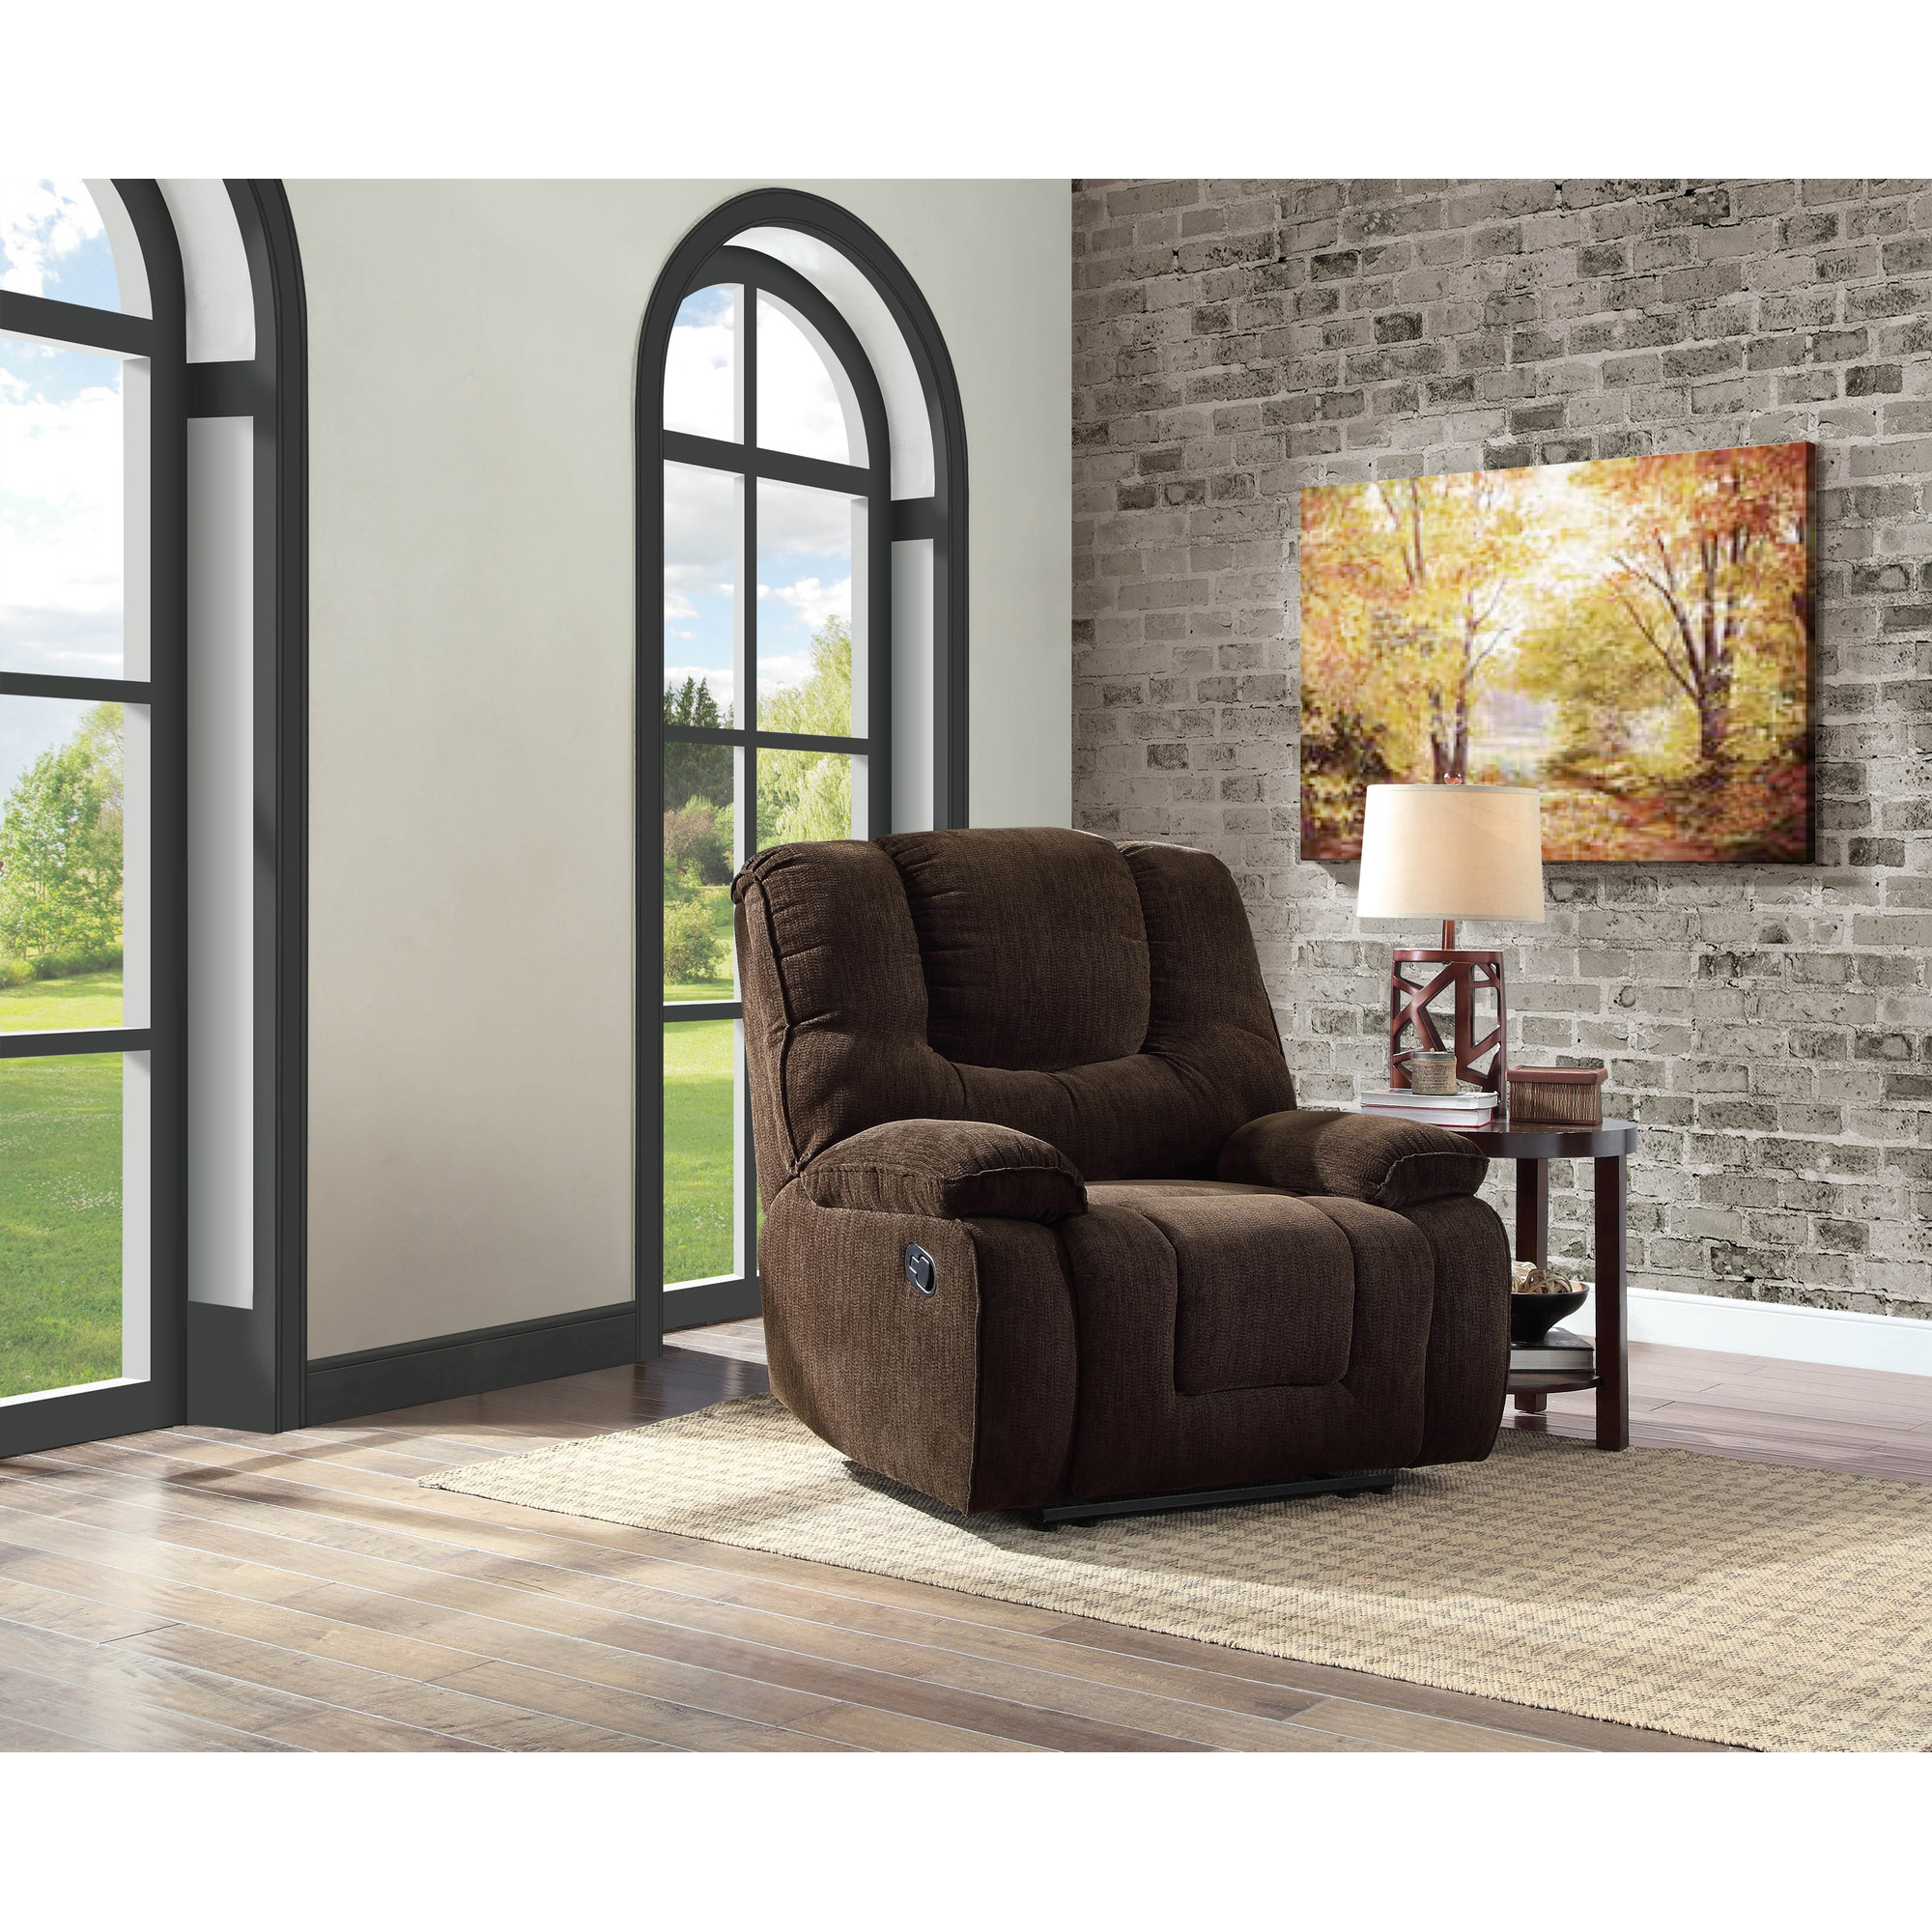 better homes and gardens big u0026 tall recliner with inarm storage and usb